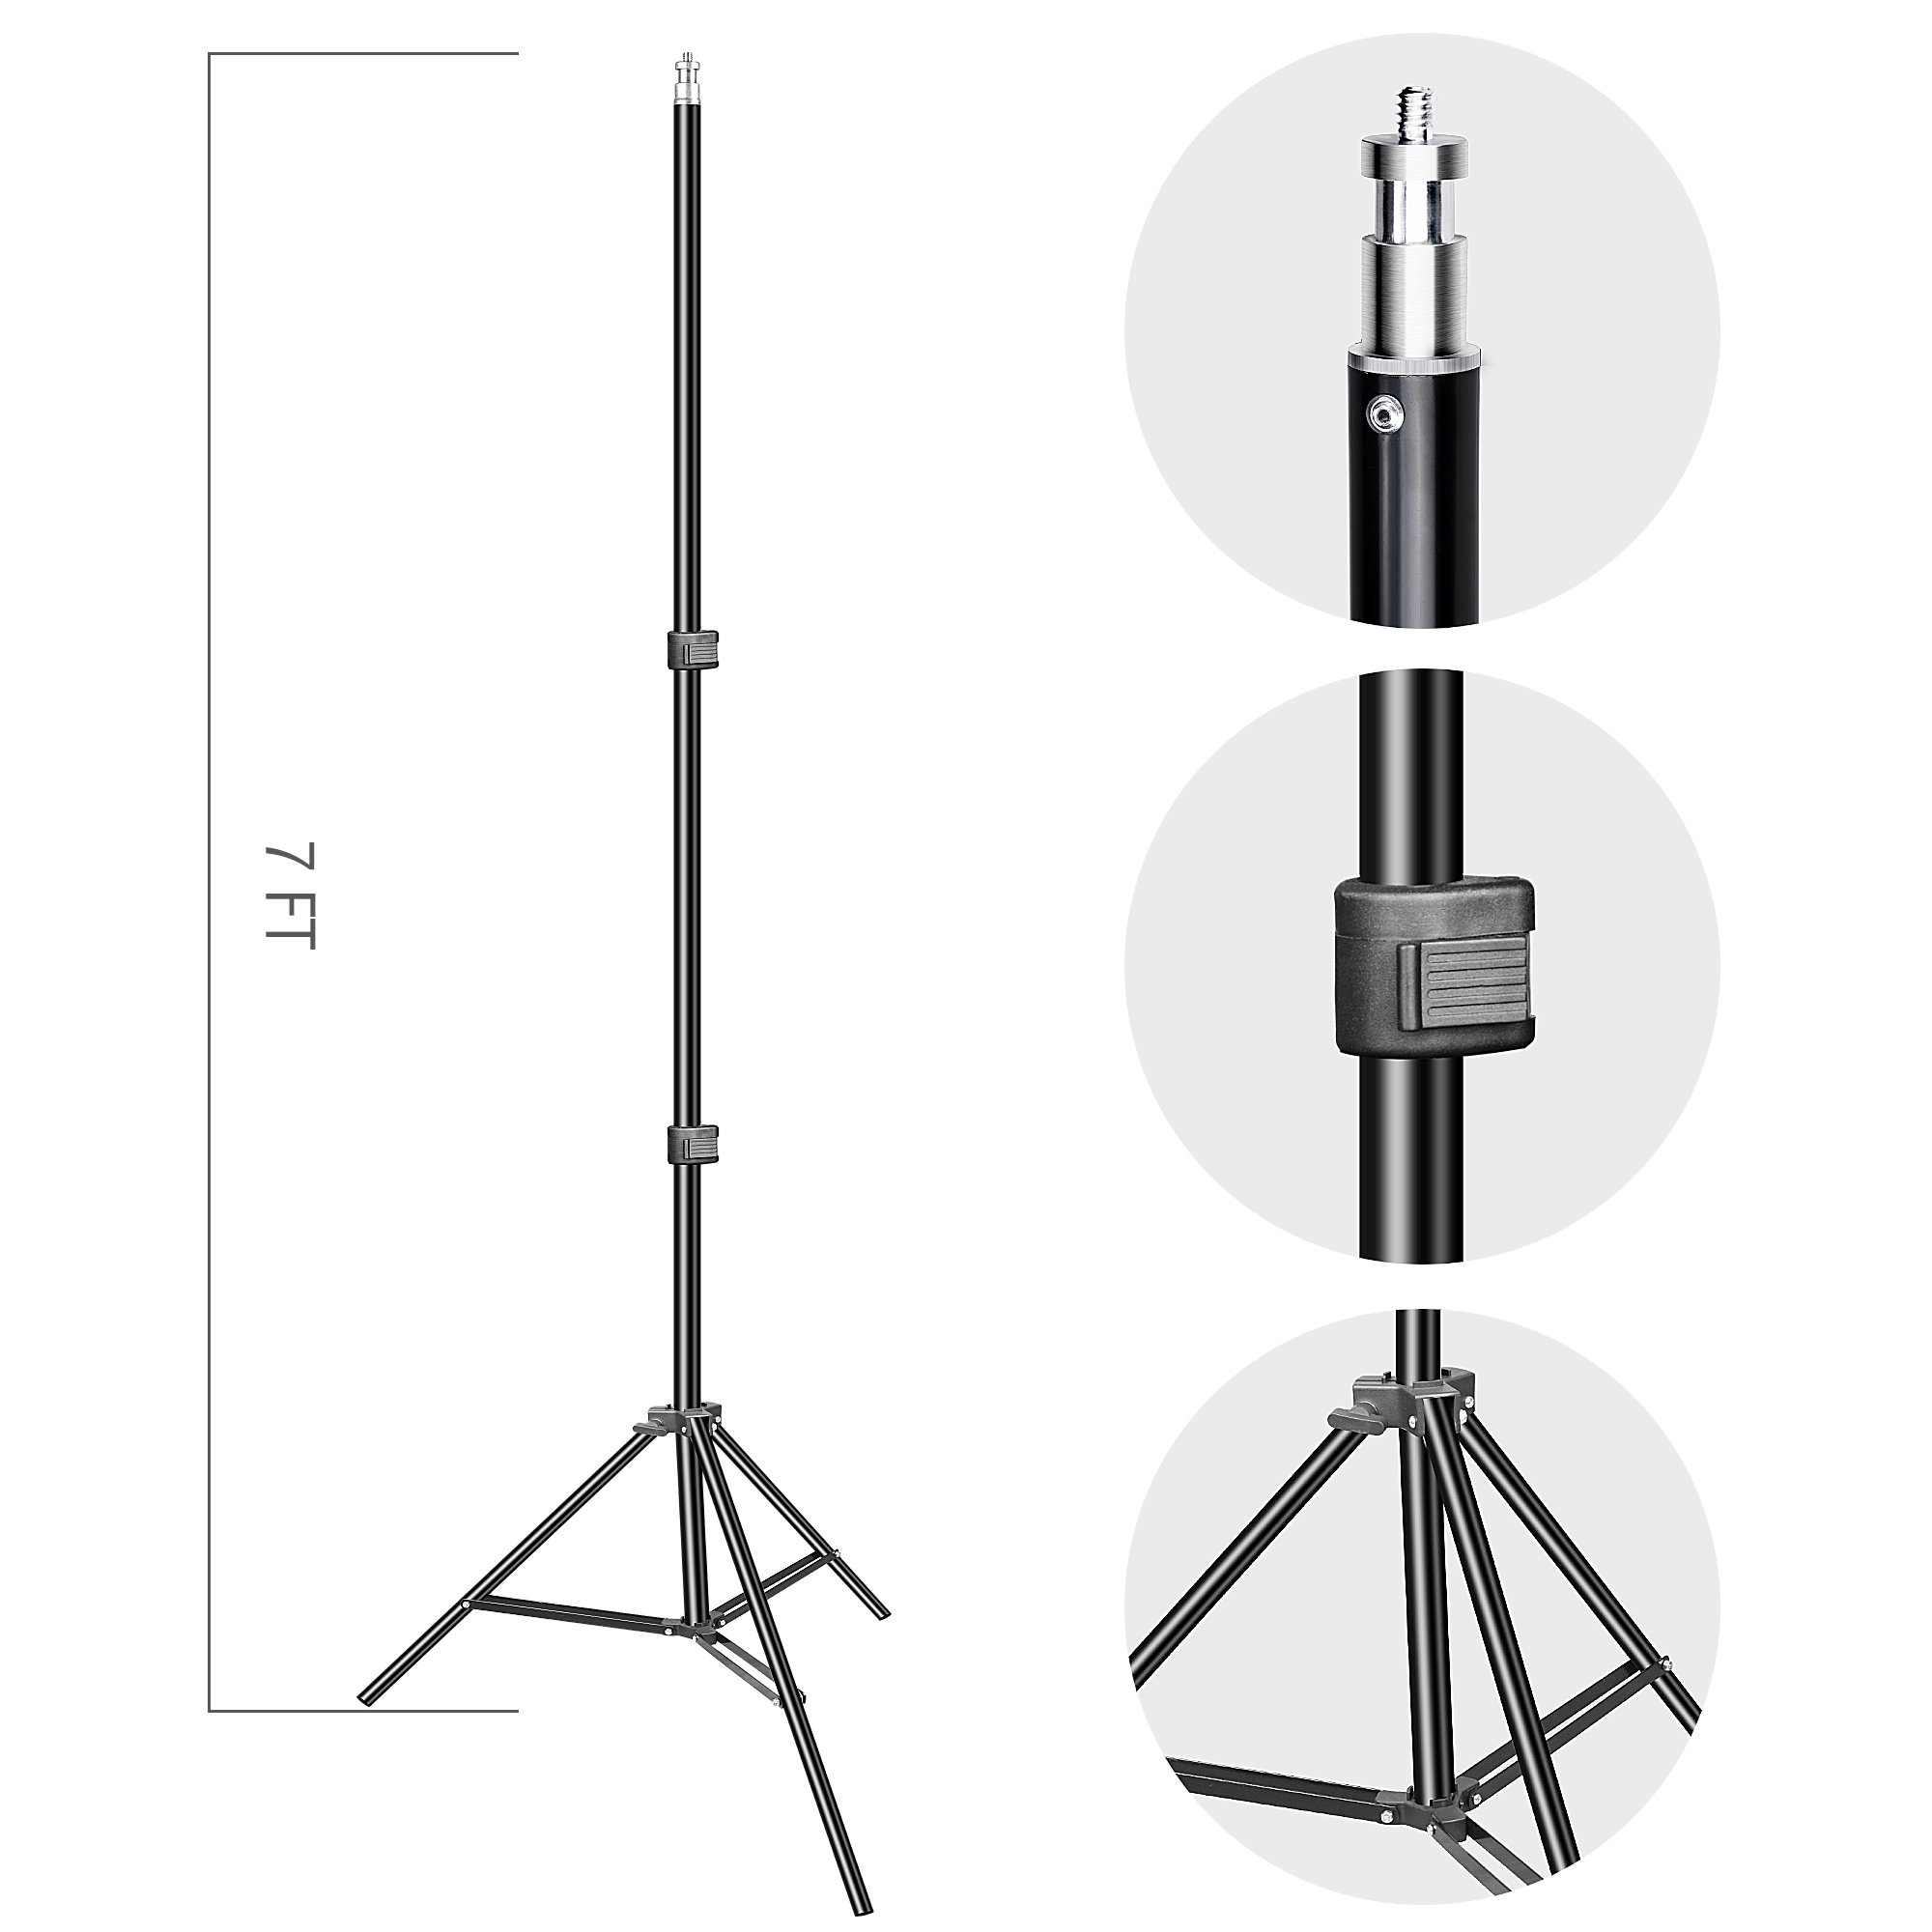 Backdrop Stand, Emart 7x10ft Photo Video Studio Muslin Background Stand Backdrop Support System Kit with Mini Ball Head, Photography Studio by EMART (Image #6)